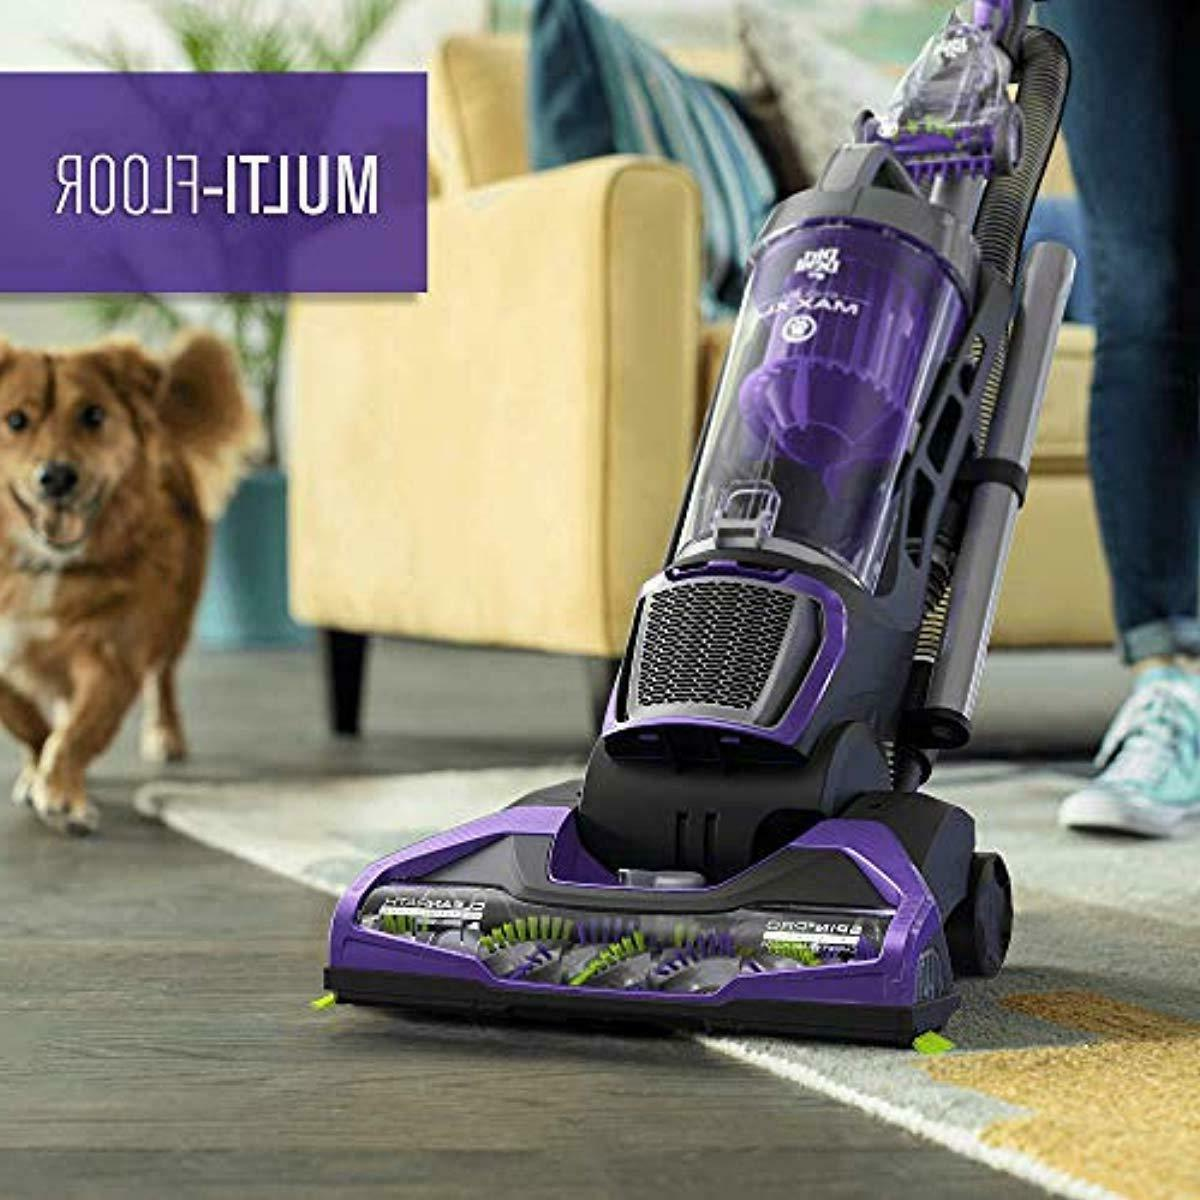 Dirt Devil Max XL Pet Vacuum with Suction, UD70186,